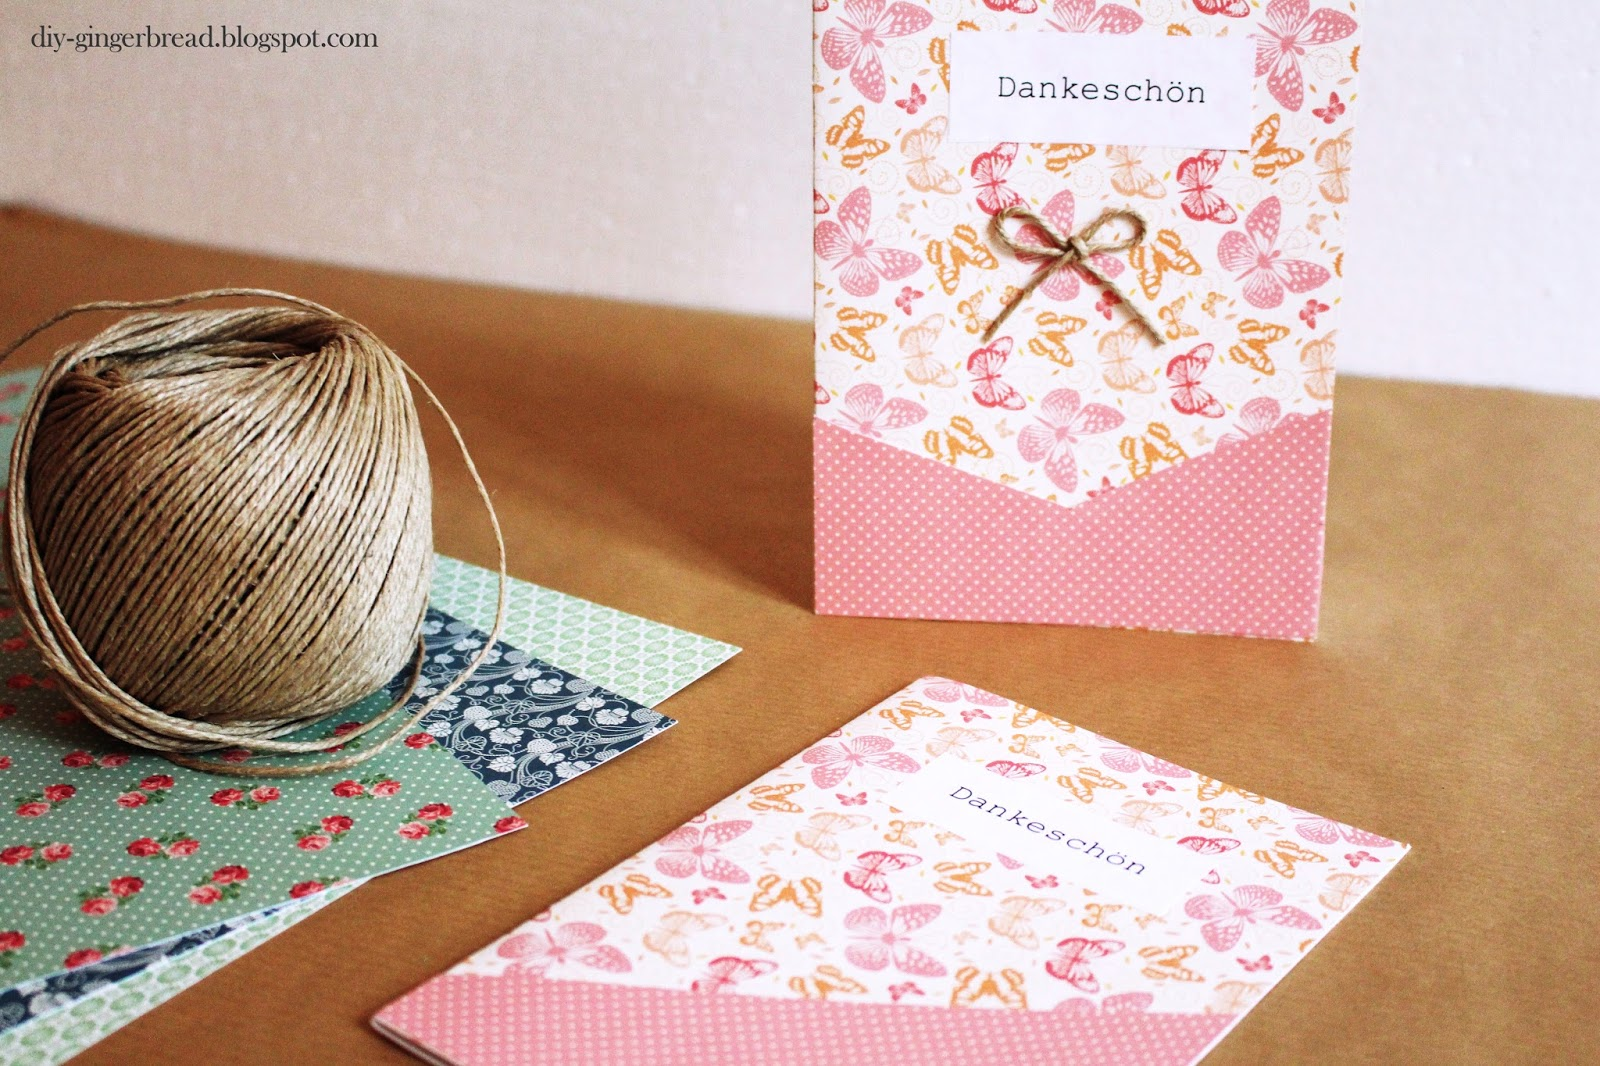 design your own thank you cards - Make Your Own Thank You Cards